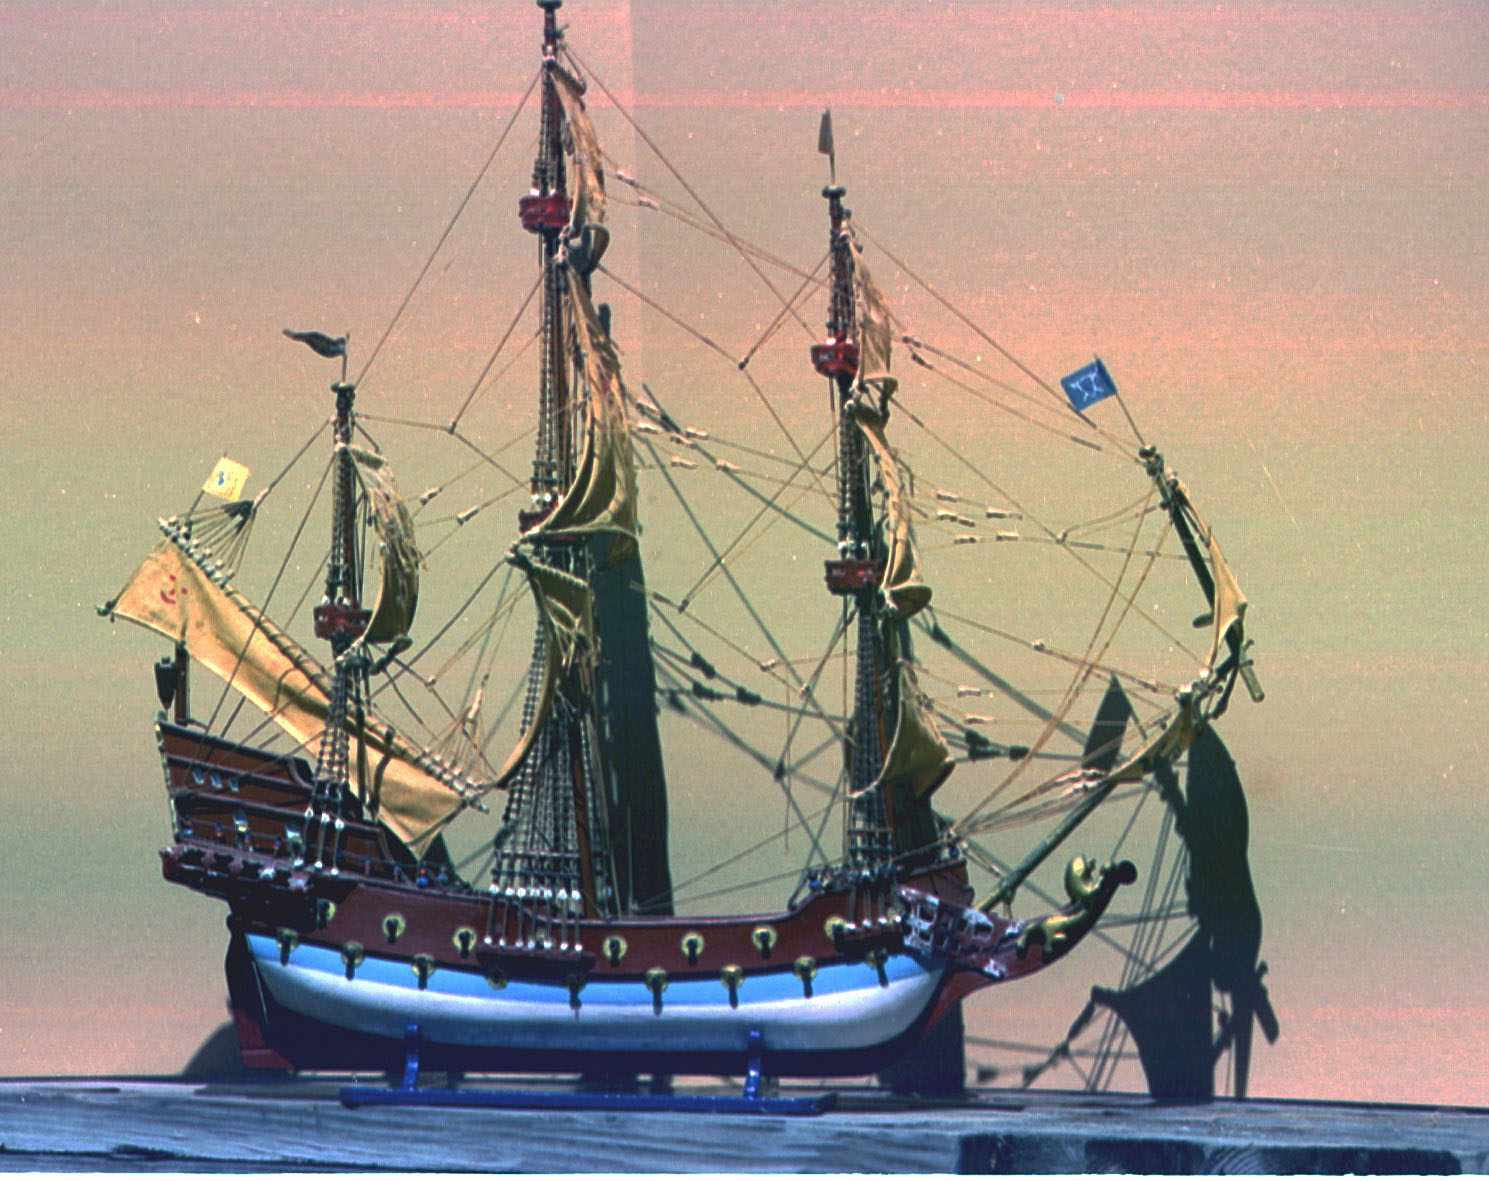 Model Of Queen Ann's Revenge Blackbeard The Pirate's Flagship On Display At The Maritime Research